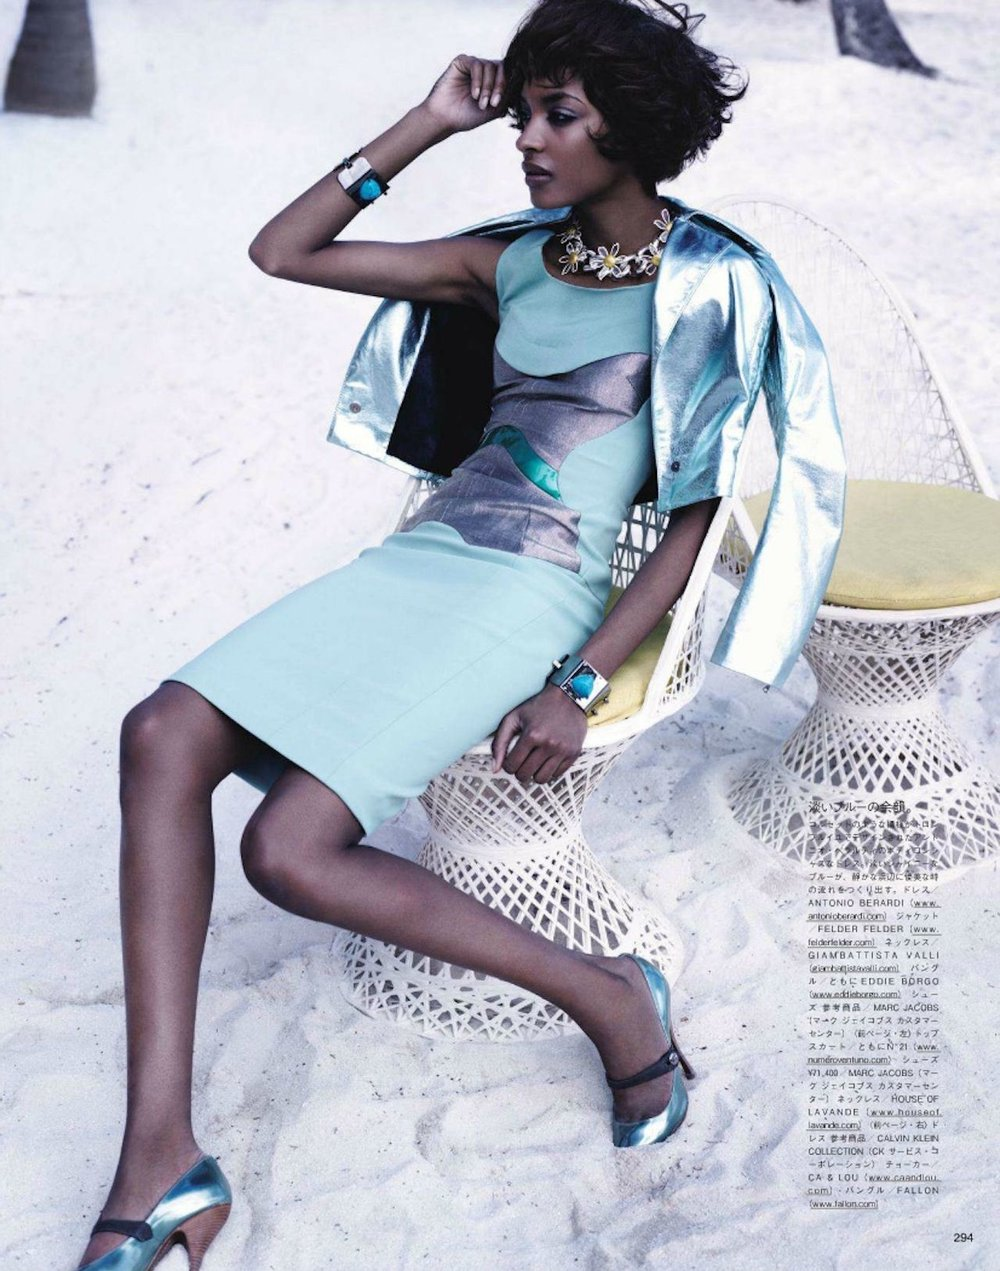 Giovanna-Battaglia-2-Swept-Away-Vogue-Japan-Josh-Olins.jpg